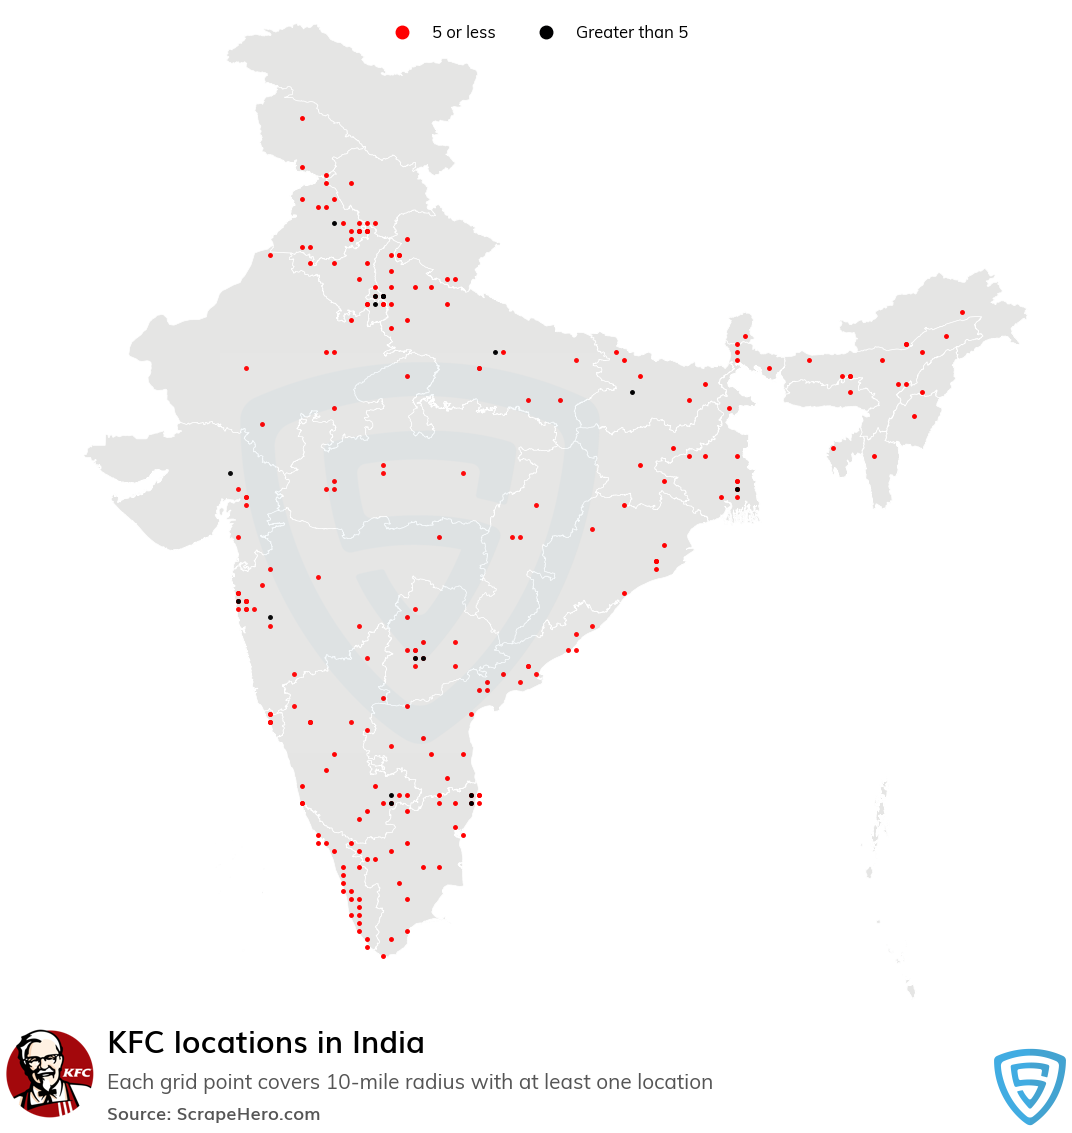 Map of KFC locations in India in 2021